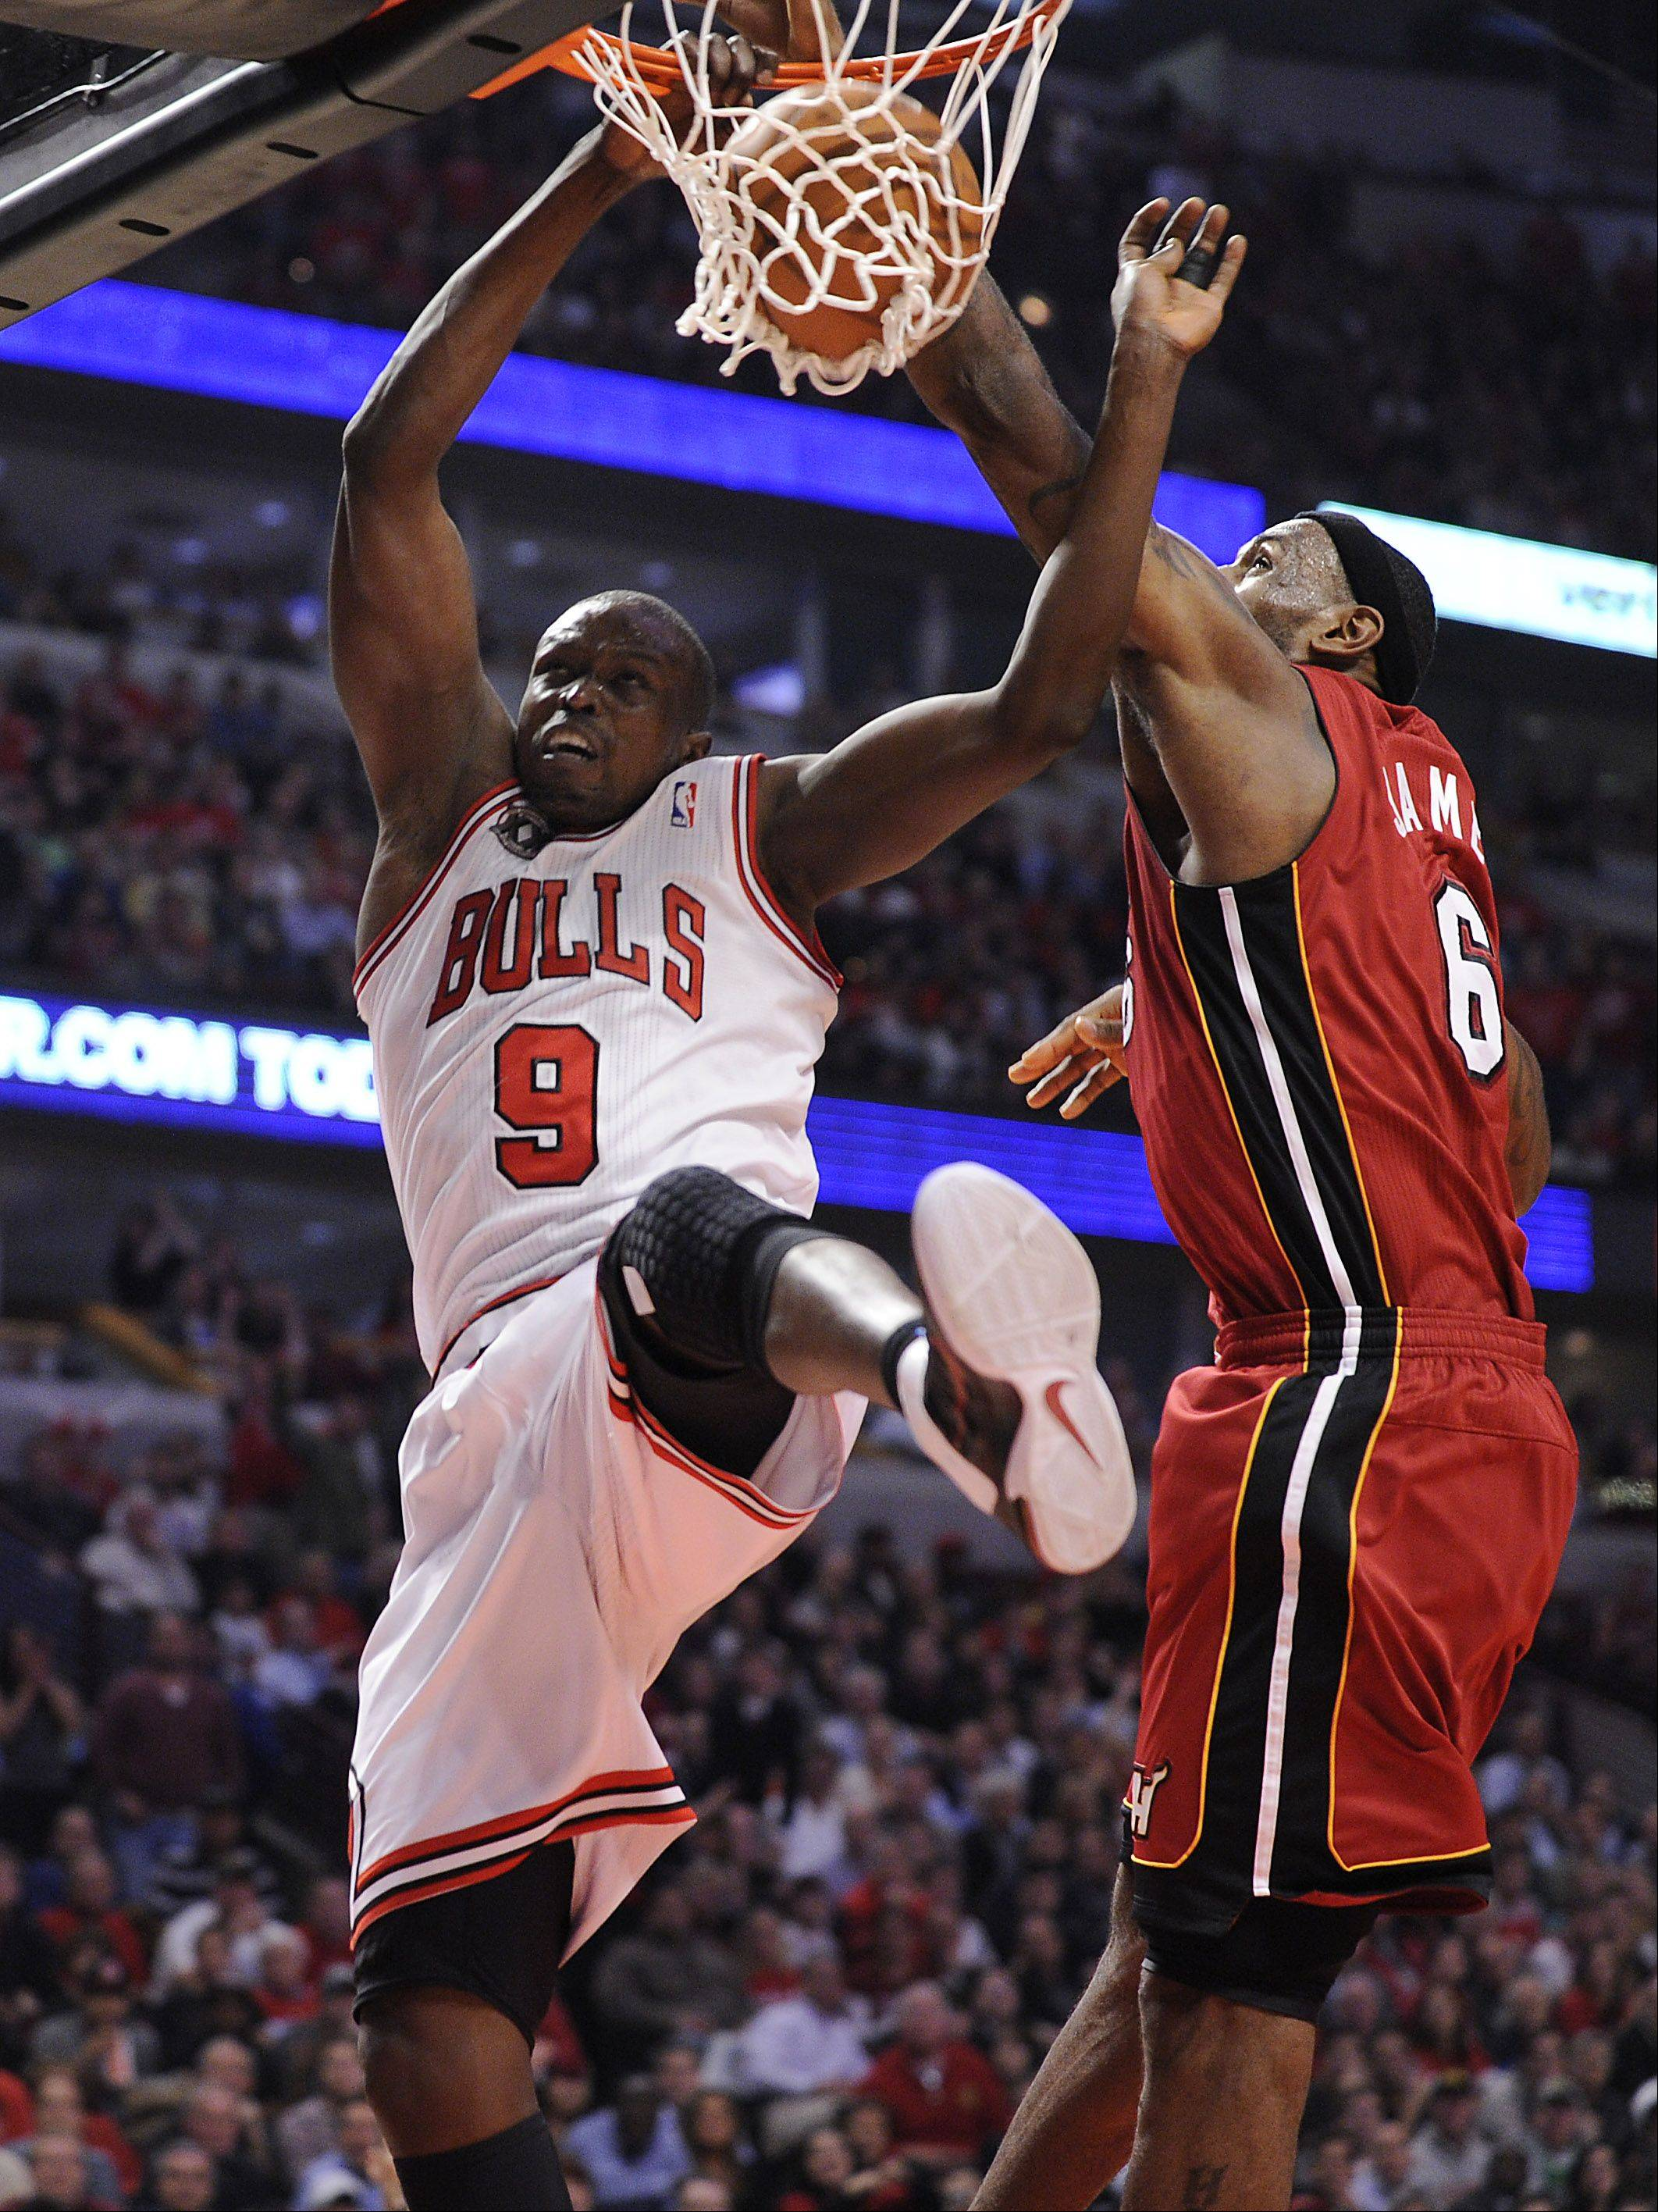 Bulls Luol Deng slams two points home against the Heat's LeBron James in the first half.